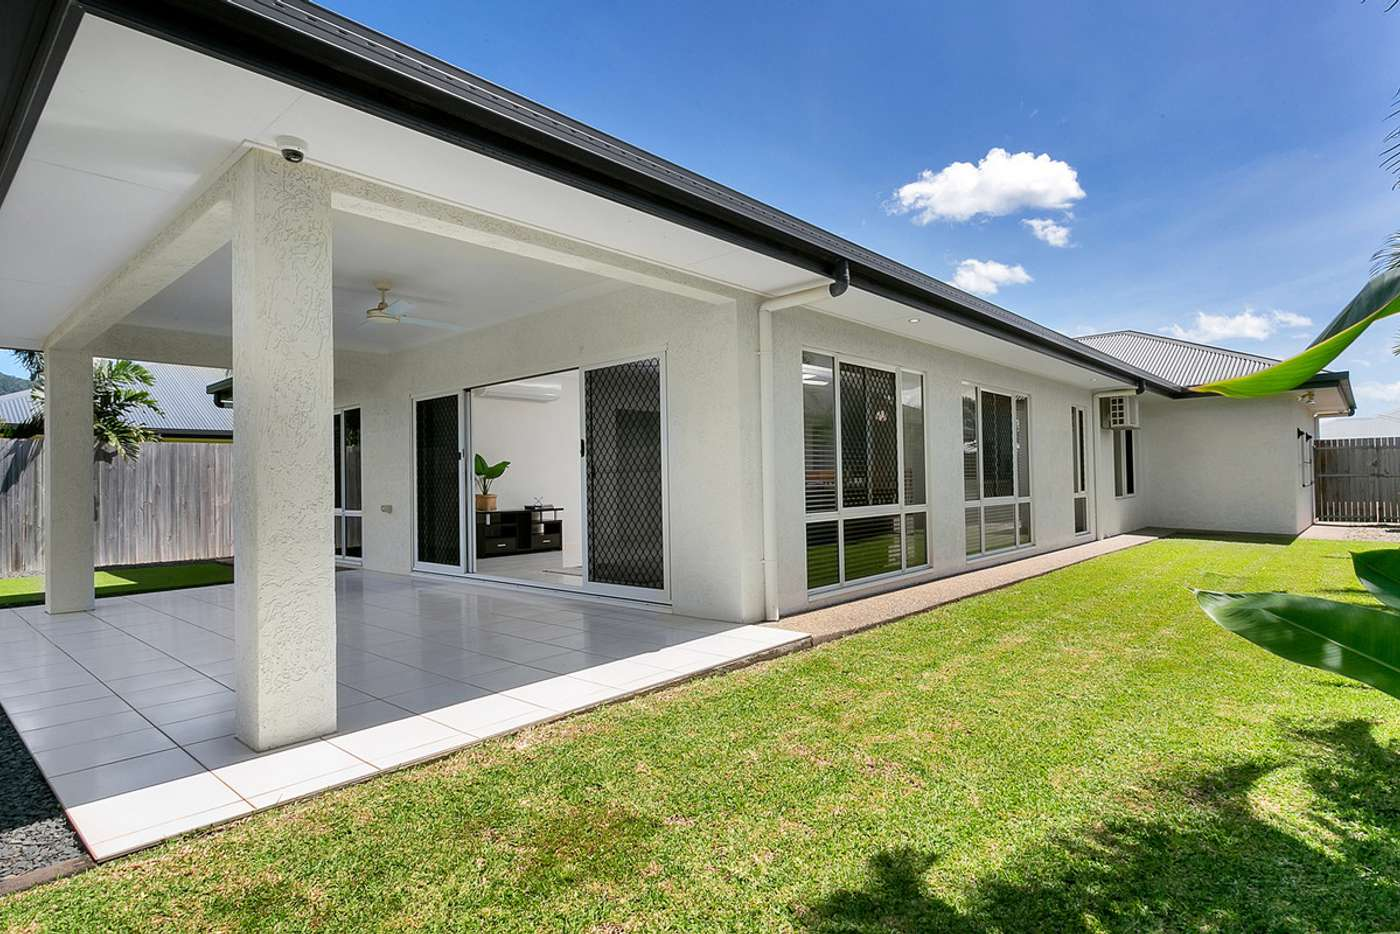 Main view of Homely house listing, 6 Munburra Parade, Smithfield QLD 4878